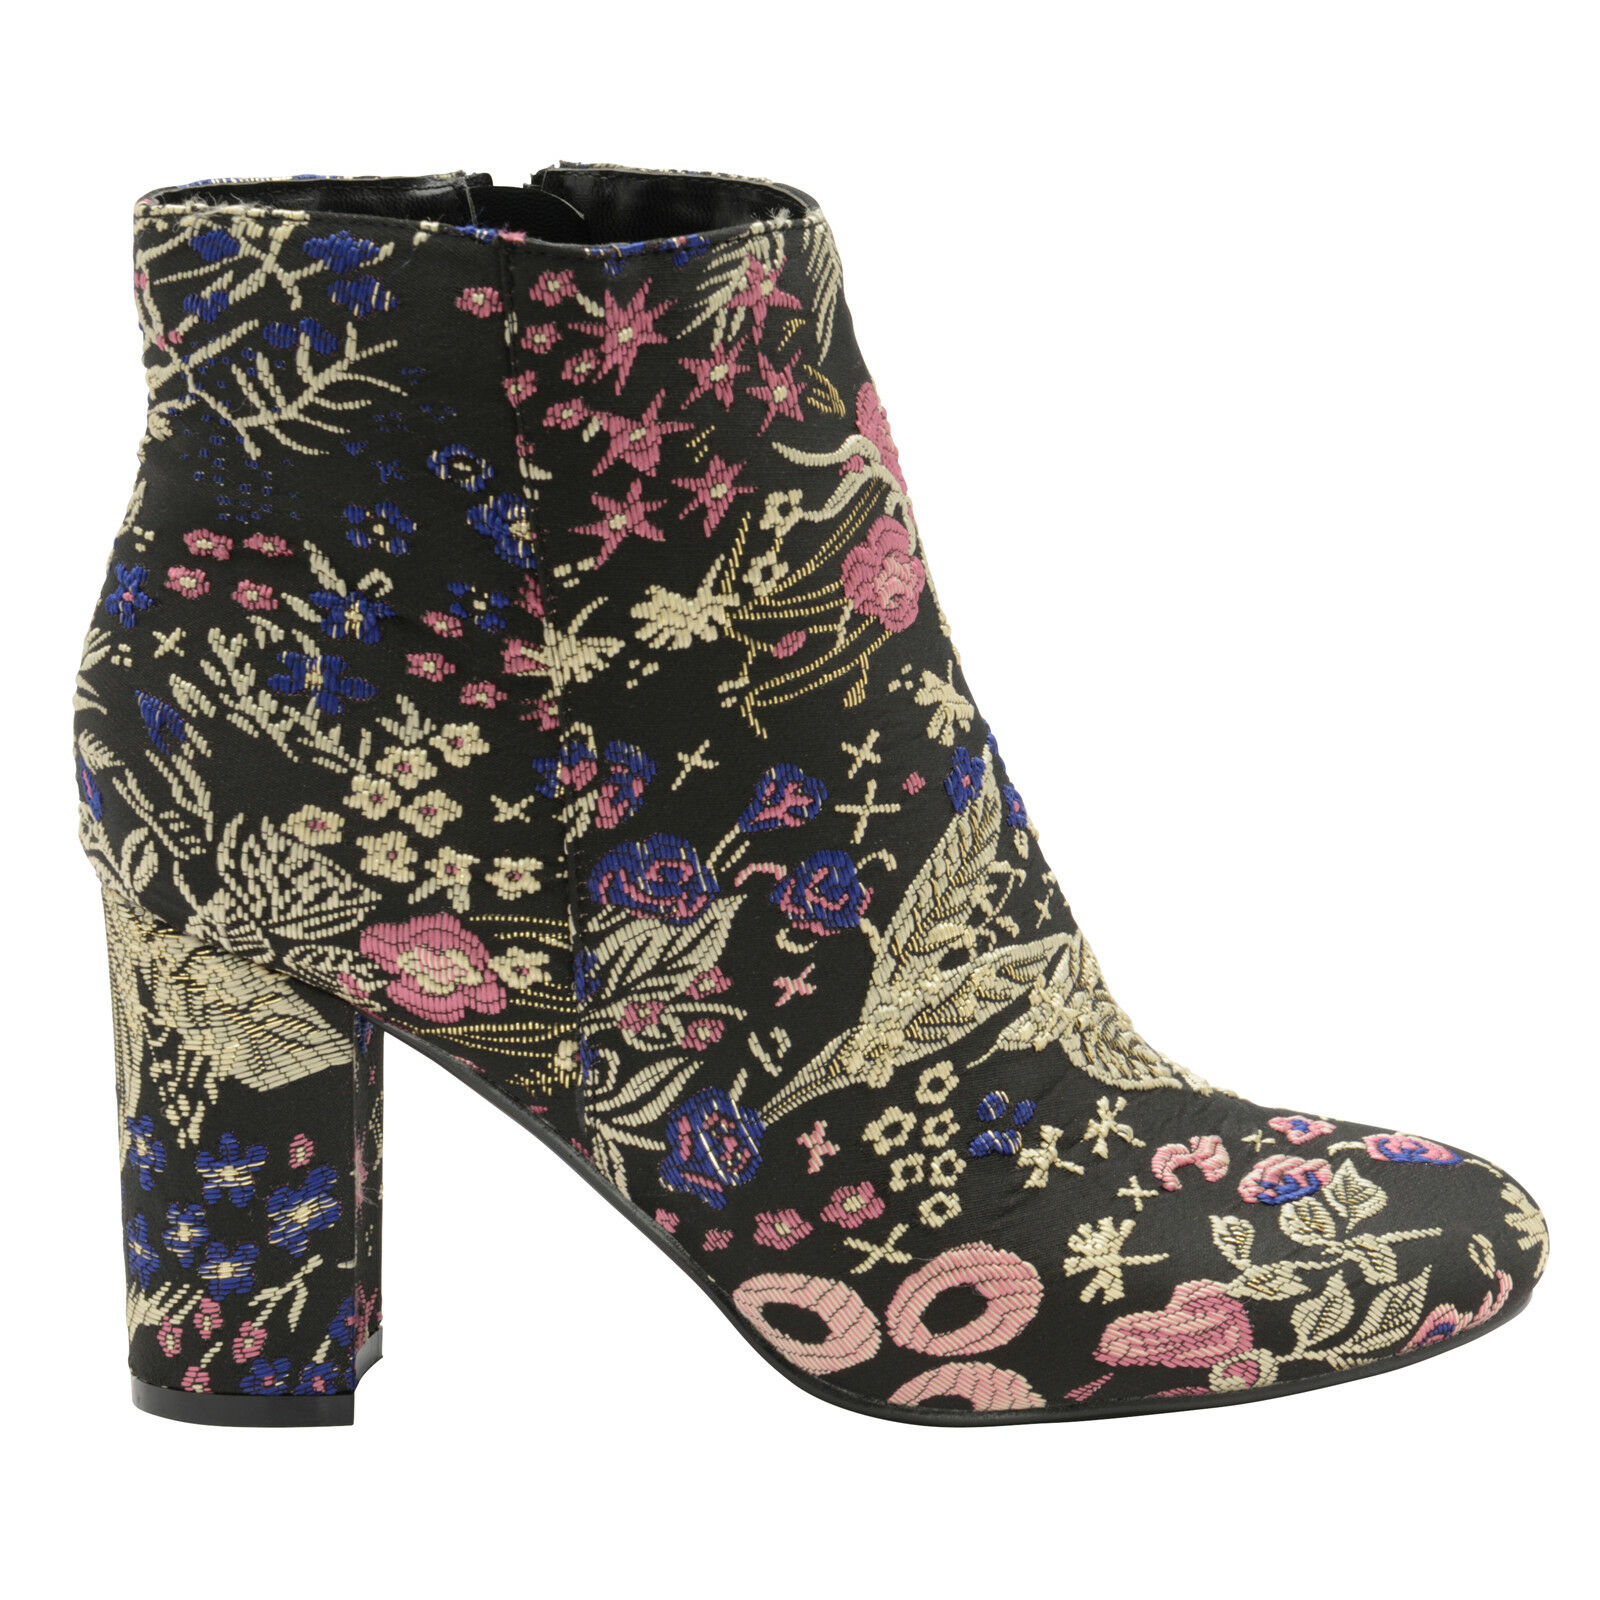 Dolcis Florine Womens Floral Embroidered Embroidered Embroidered Ankle Boots Ladies Block Heel shoes a9cf39